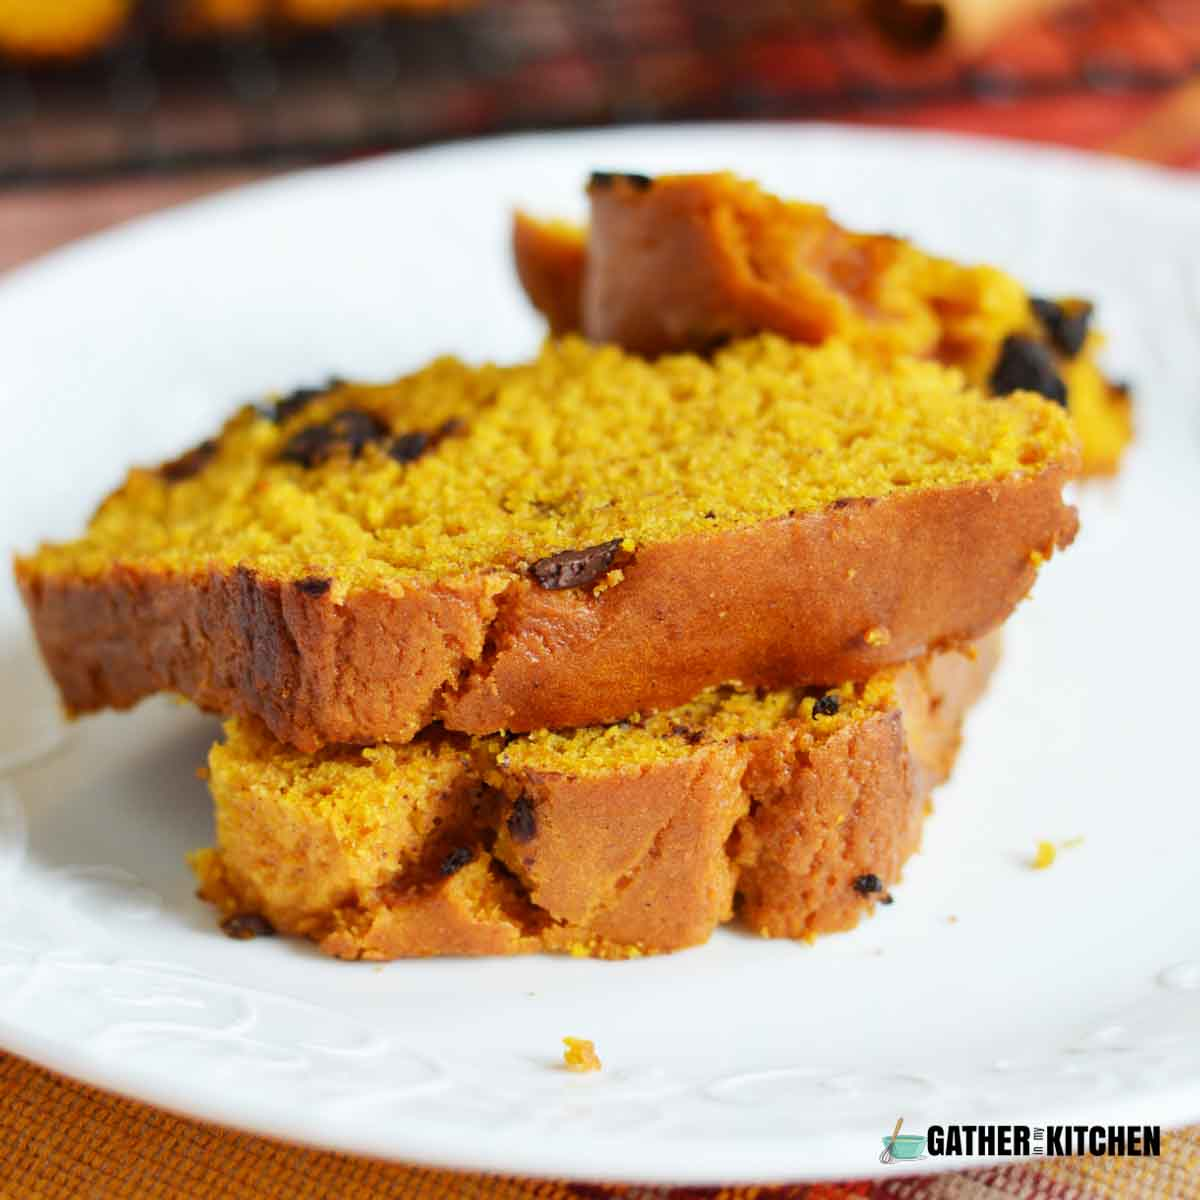 Two slices of pumpkin chocolate chip bread on a plate.